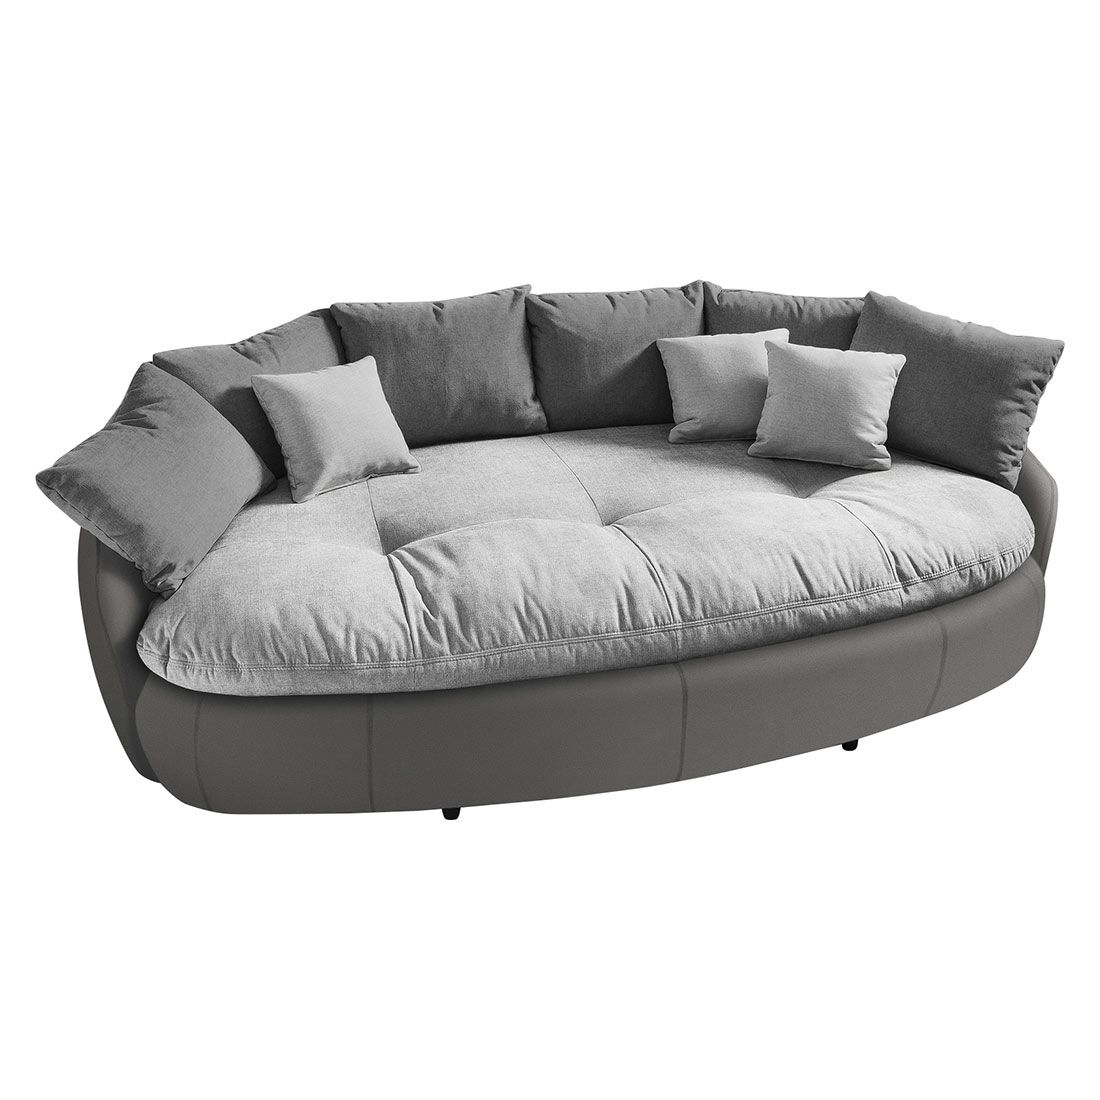 Cailen Big Sofa 238x140x80cm Light Grey Fango Piolo